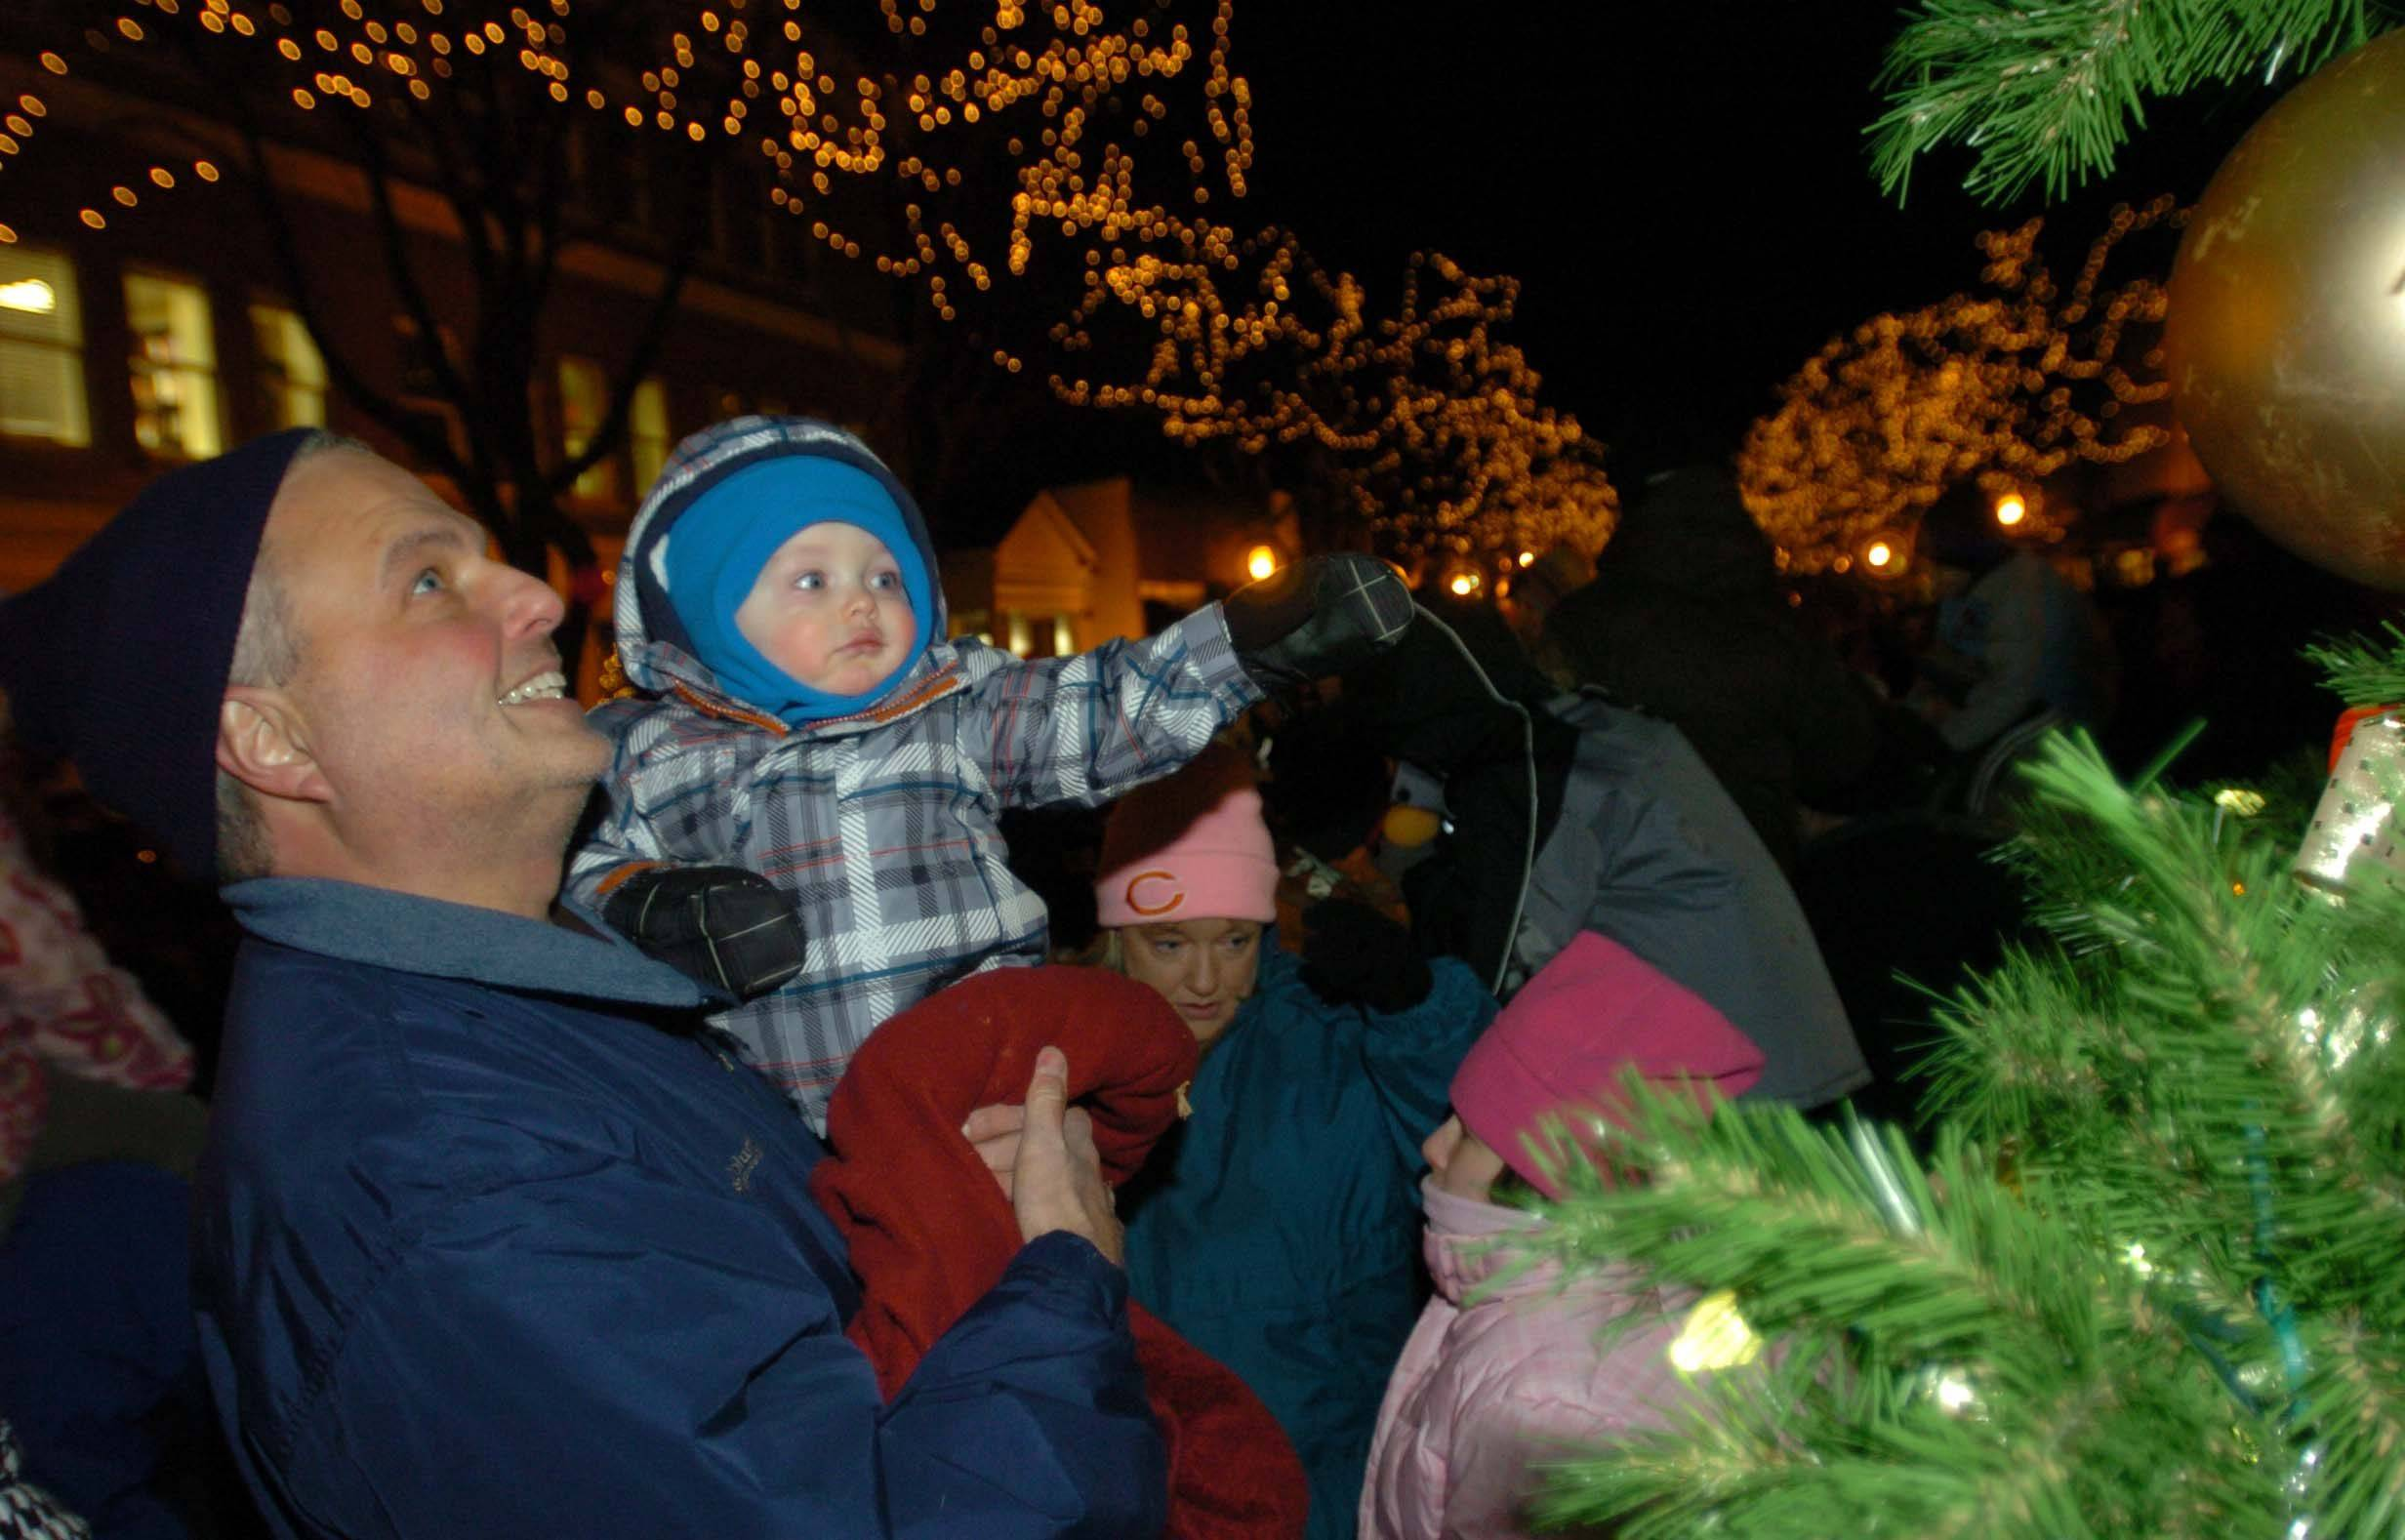 Steve Driza and his Grandson James Lewis ,1, of Glen Ellyn check out the Christmas tree during the Glen Ellyn tree lighting Friday.